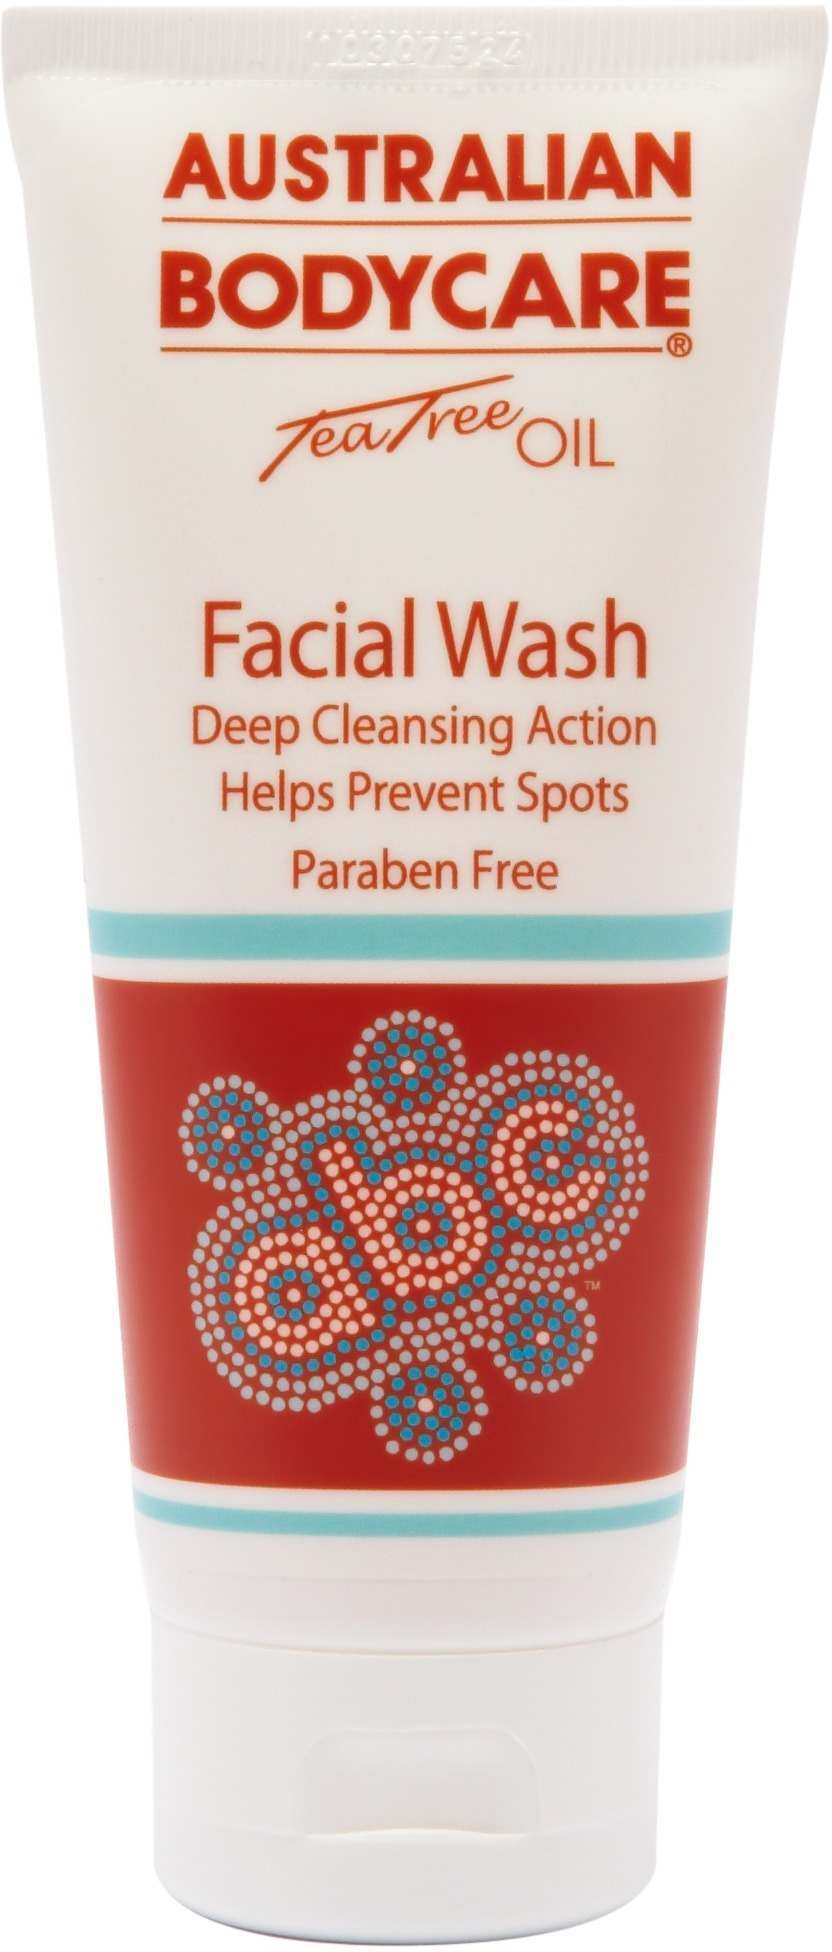 Australian BodyCare 1AP-004100 ABC Facial Wash